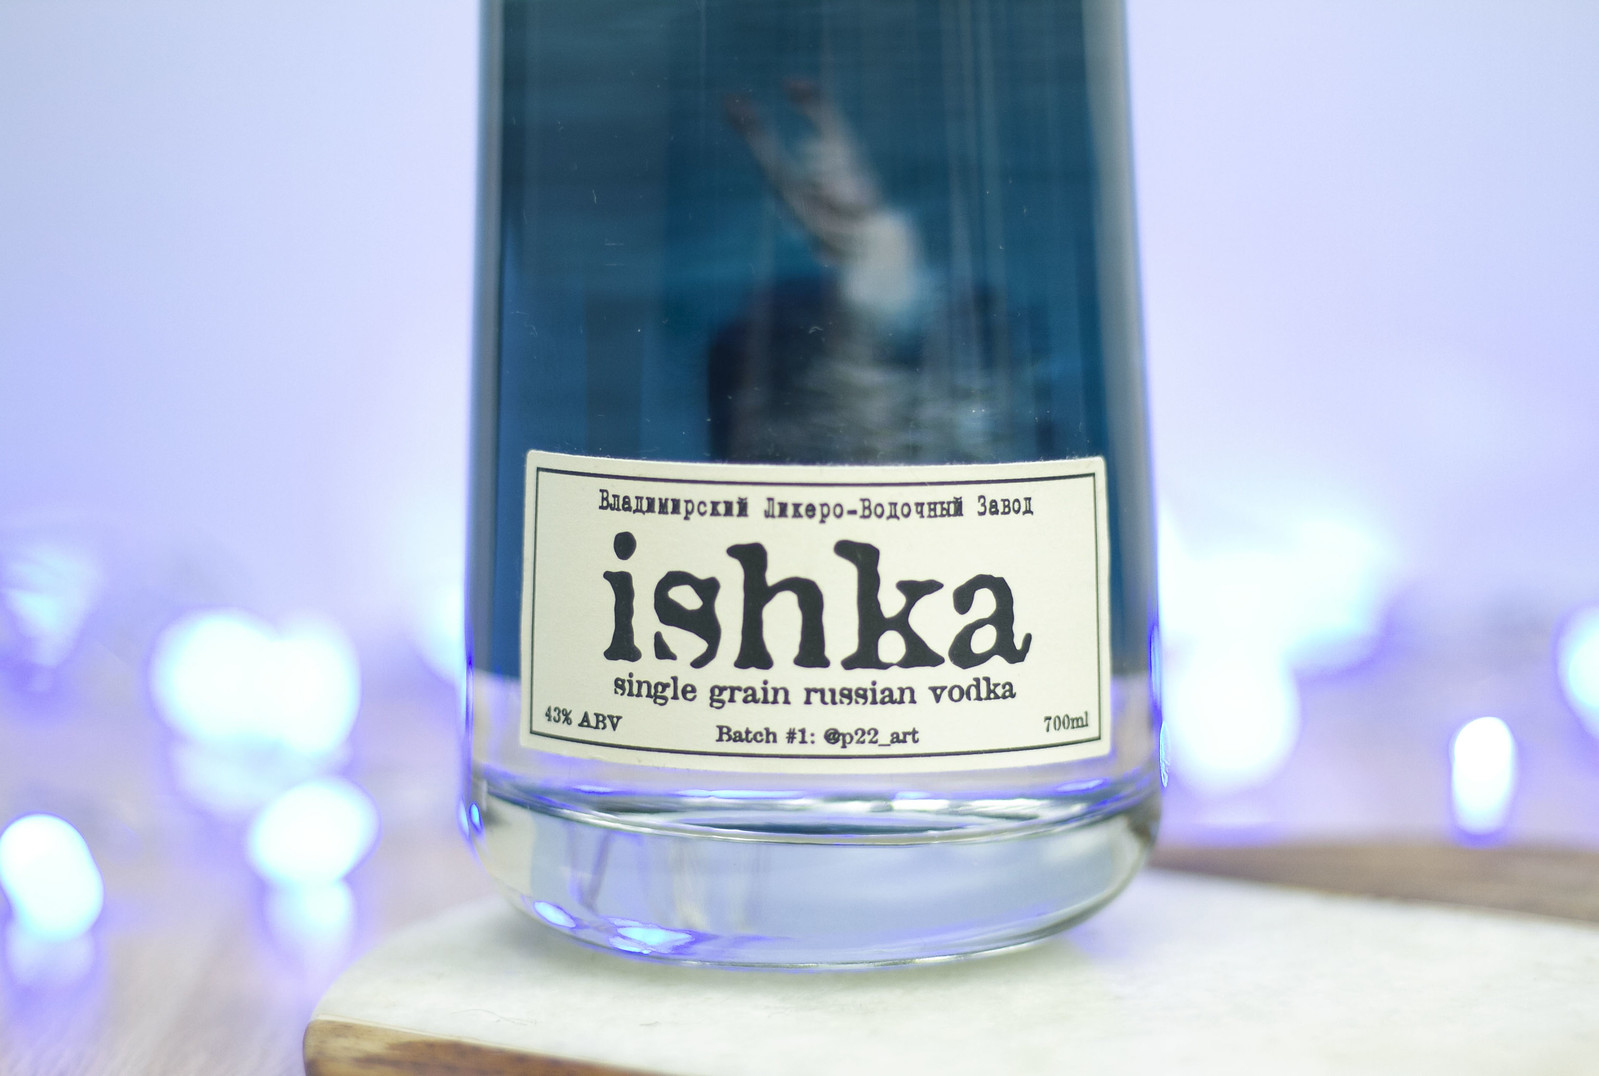 ishka codka bottle dancer